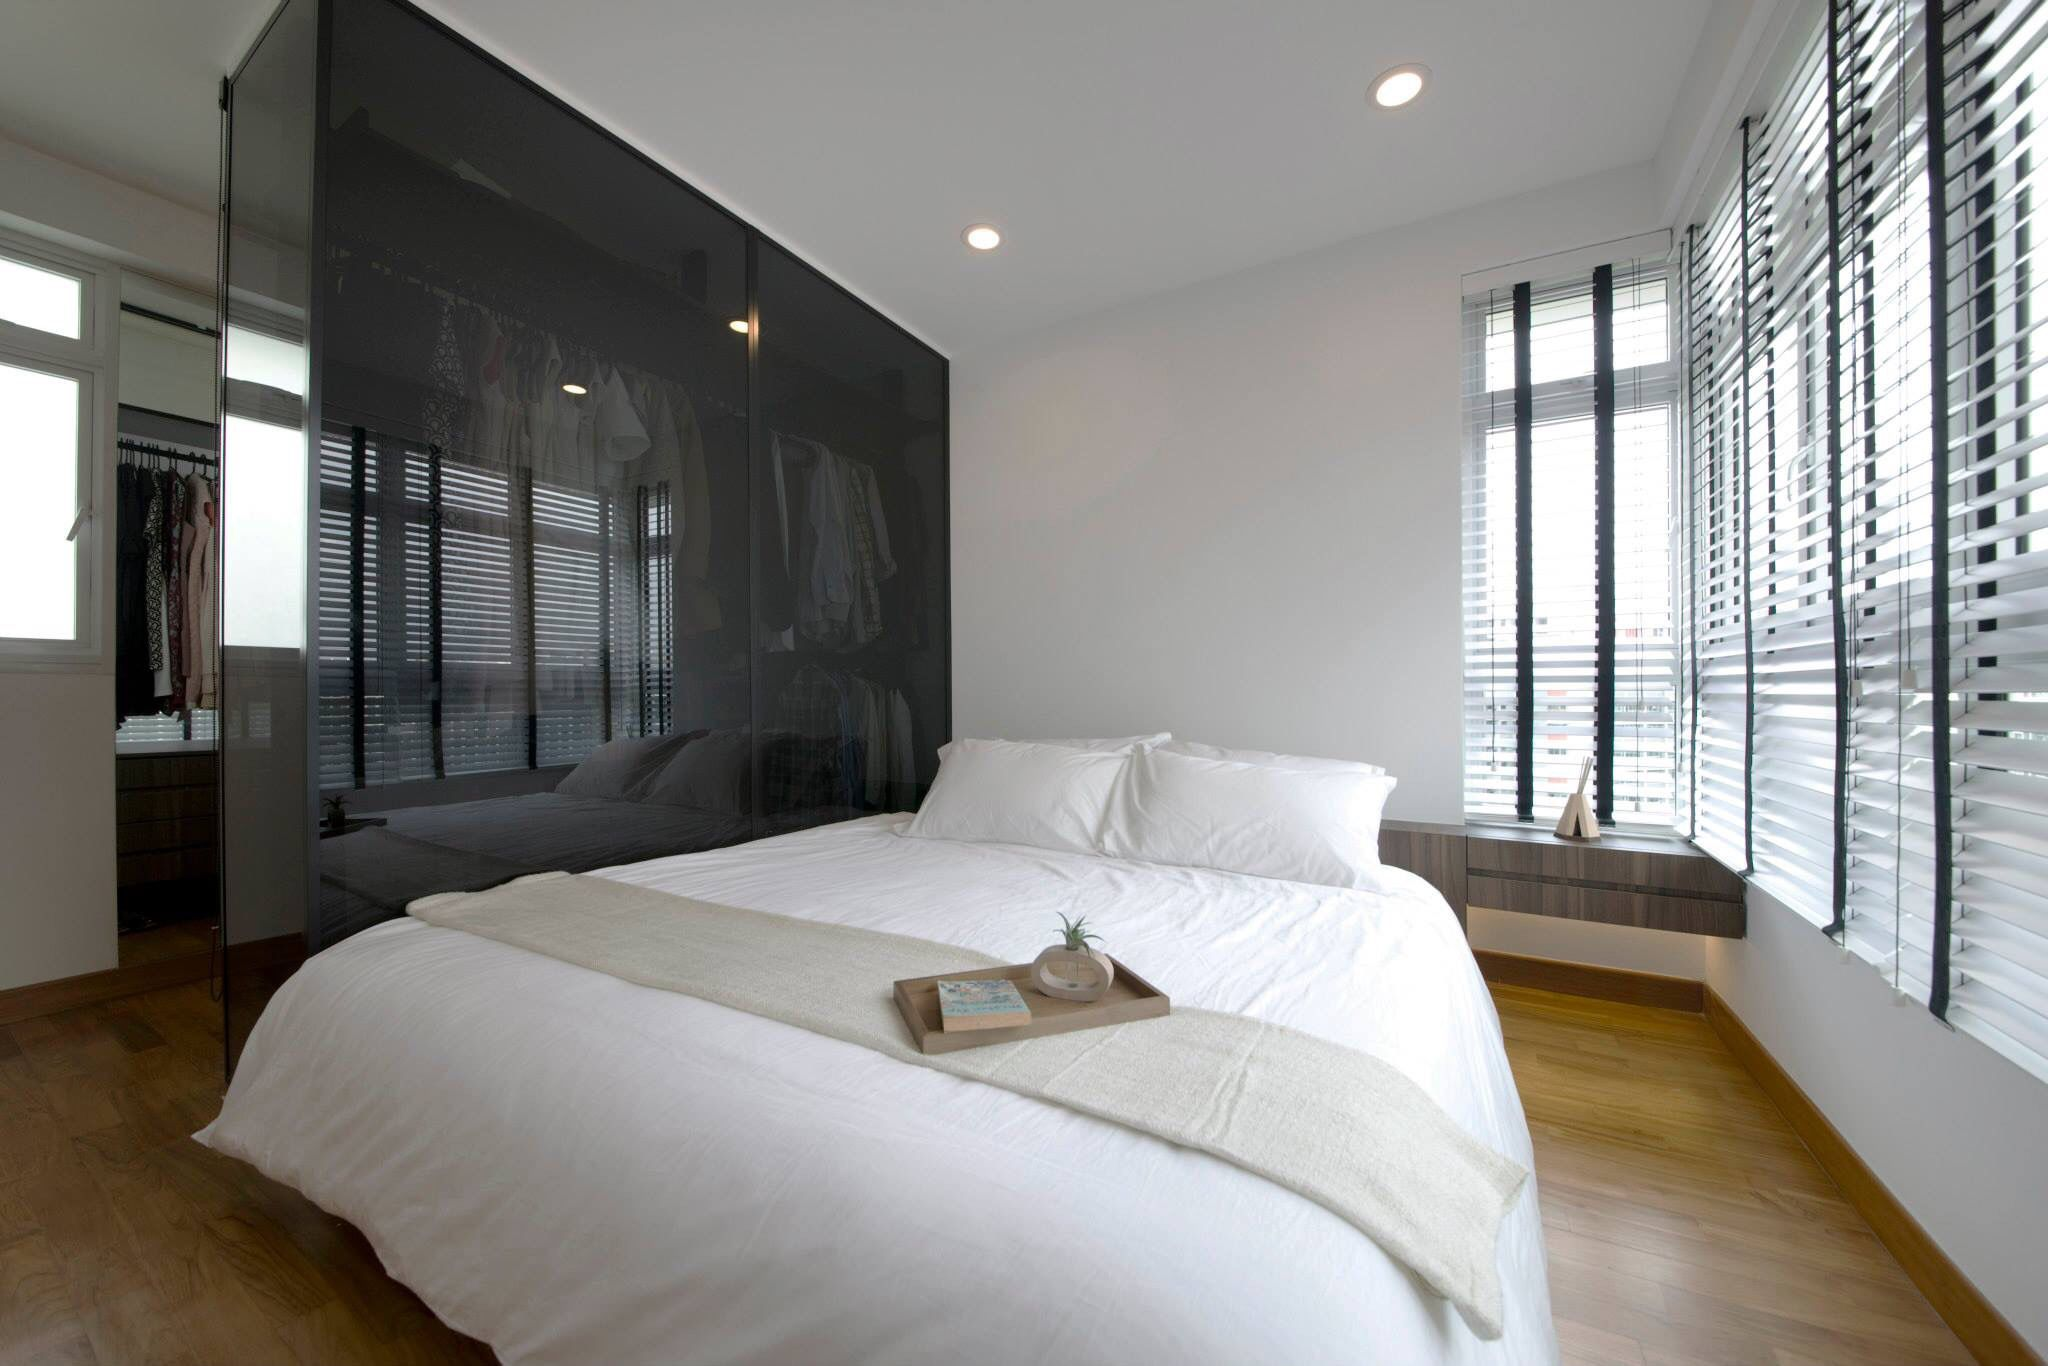 Master bedroom view with walk in wardrobe for the roof - Master bedroom closet designs and ideas ...